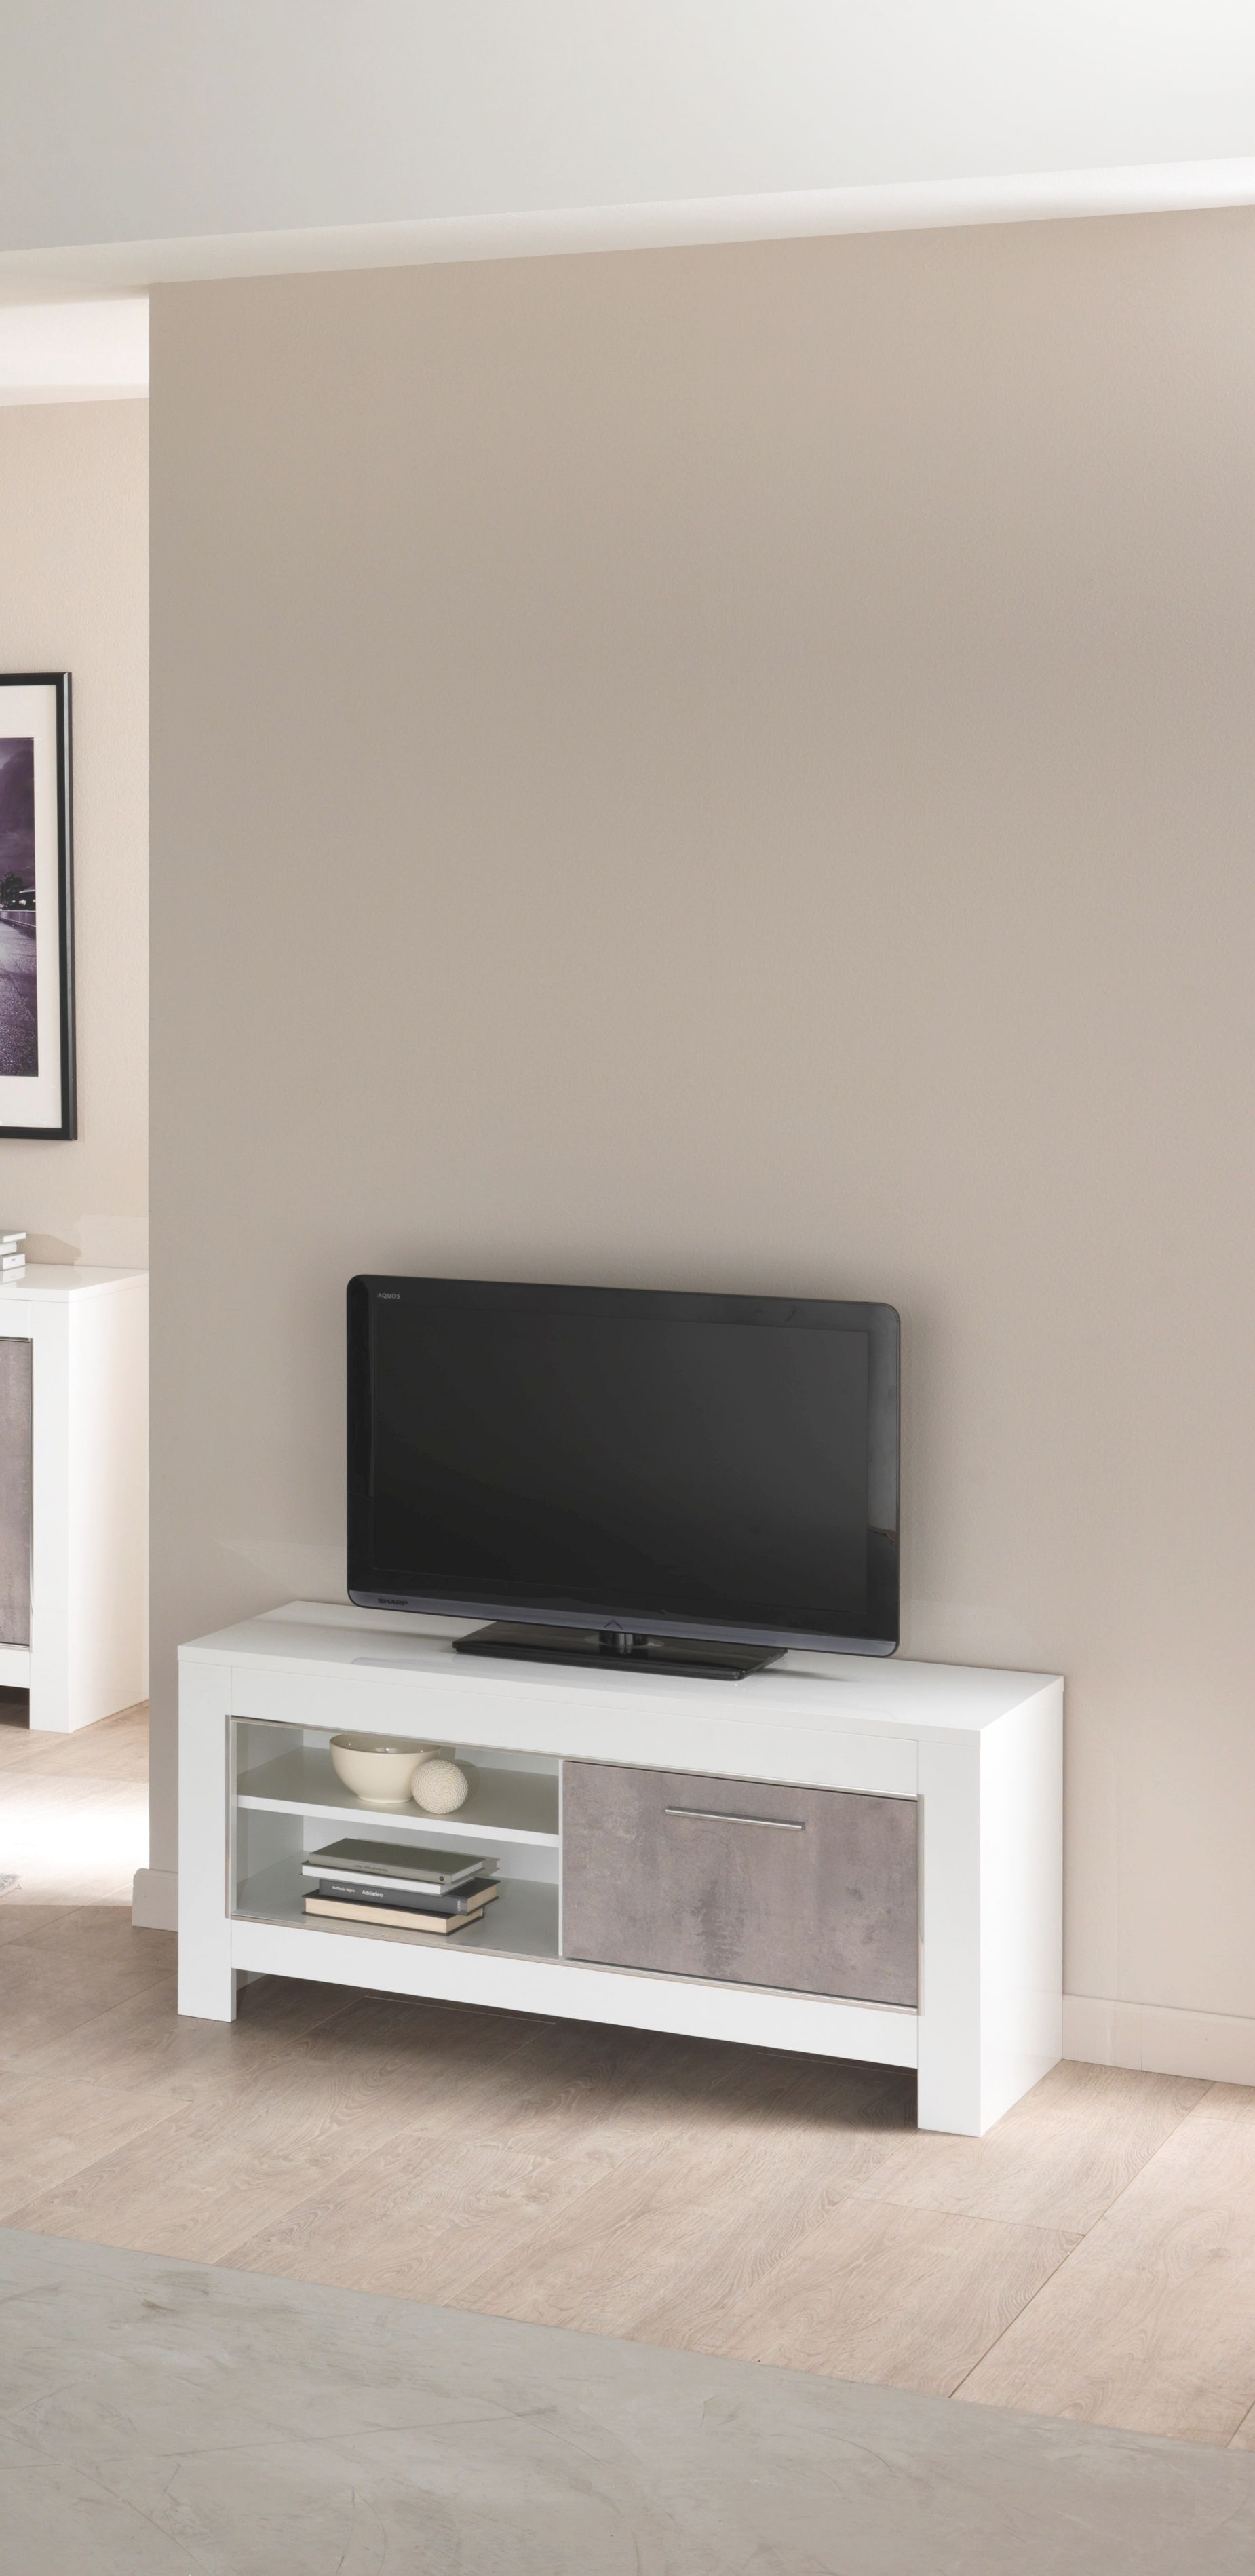 Orion Italian White And Grey Marble High Gloss Tv Unit 112Cm with regard to Awesome Stylish Tv Unit